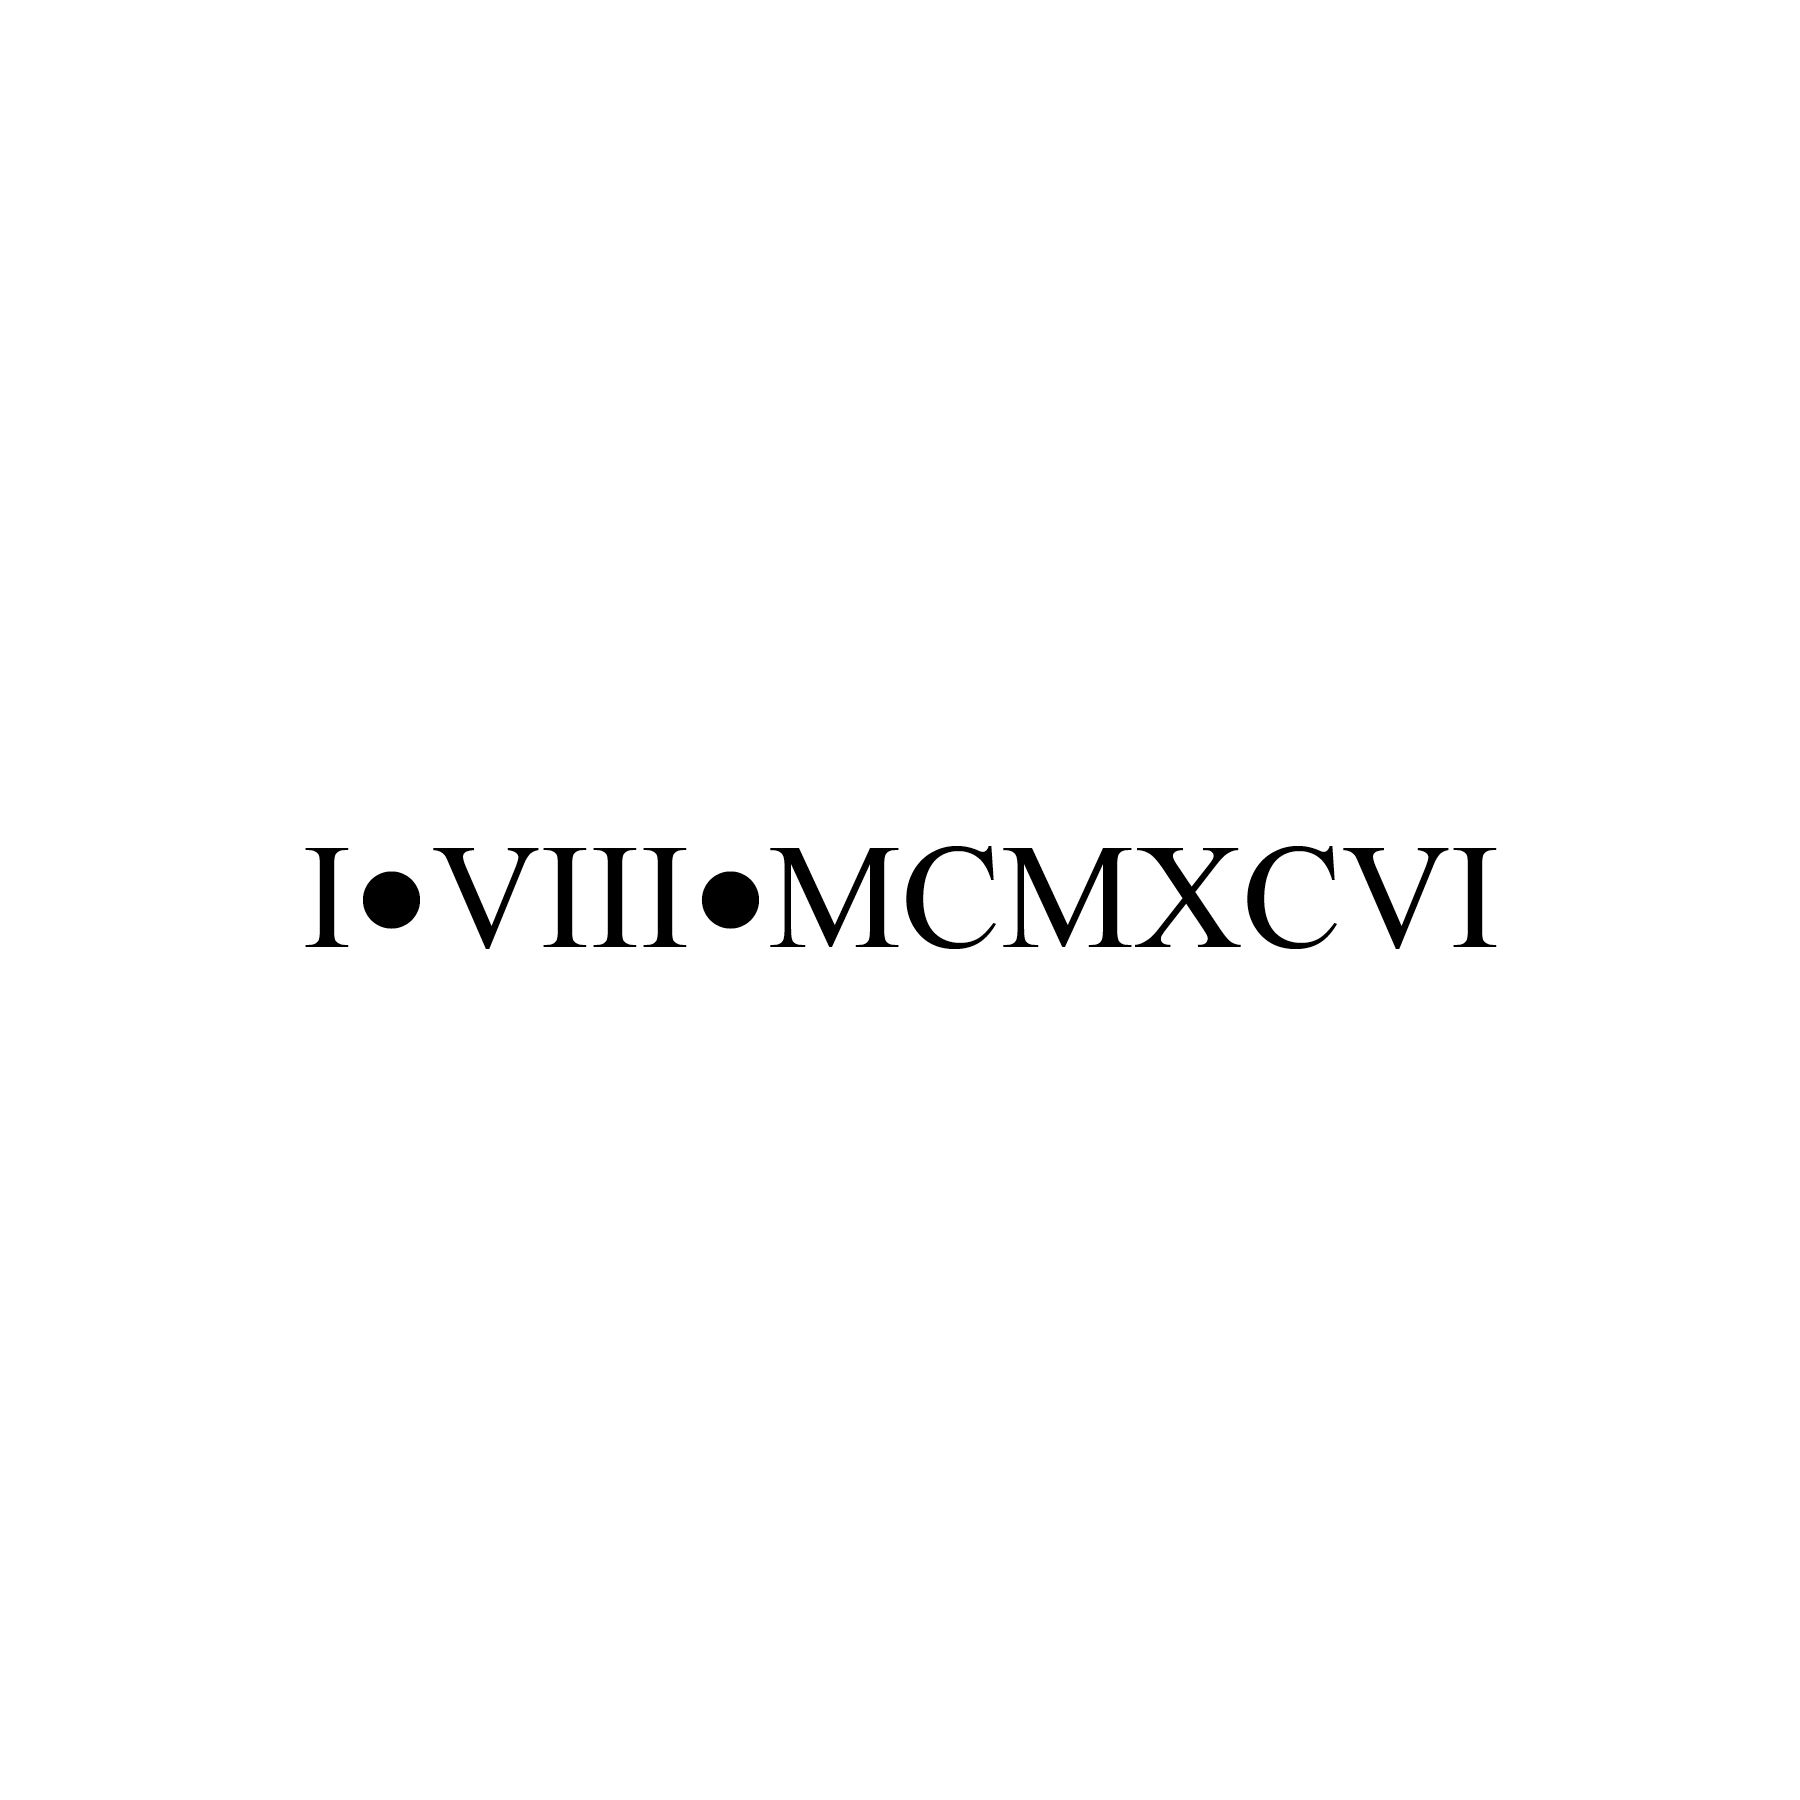 1996 Roman Numeral Tattoo 1996 Is Only The Mcmxcvi Part 1996